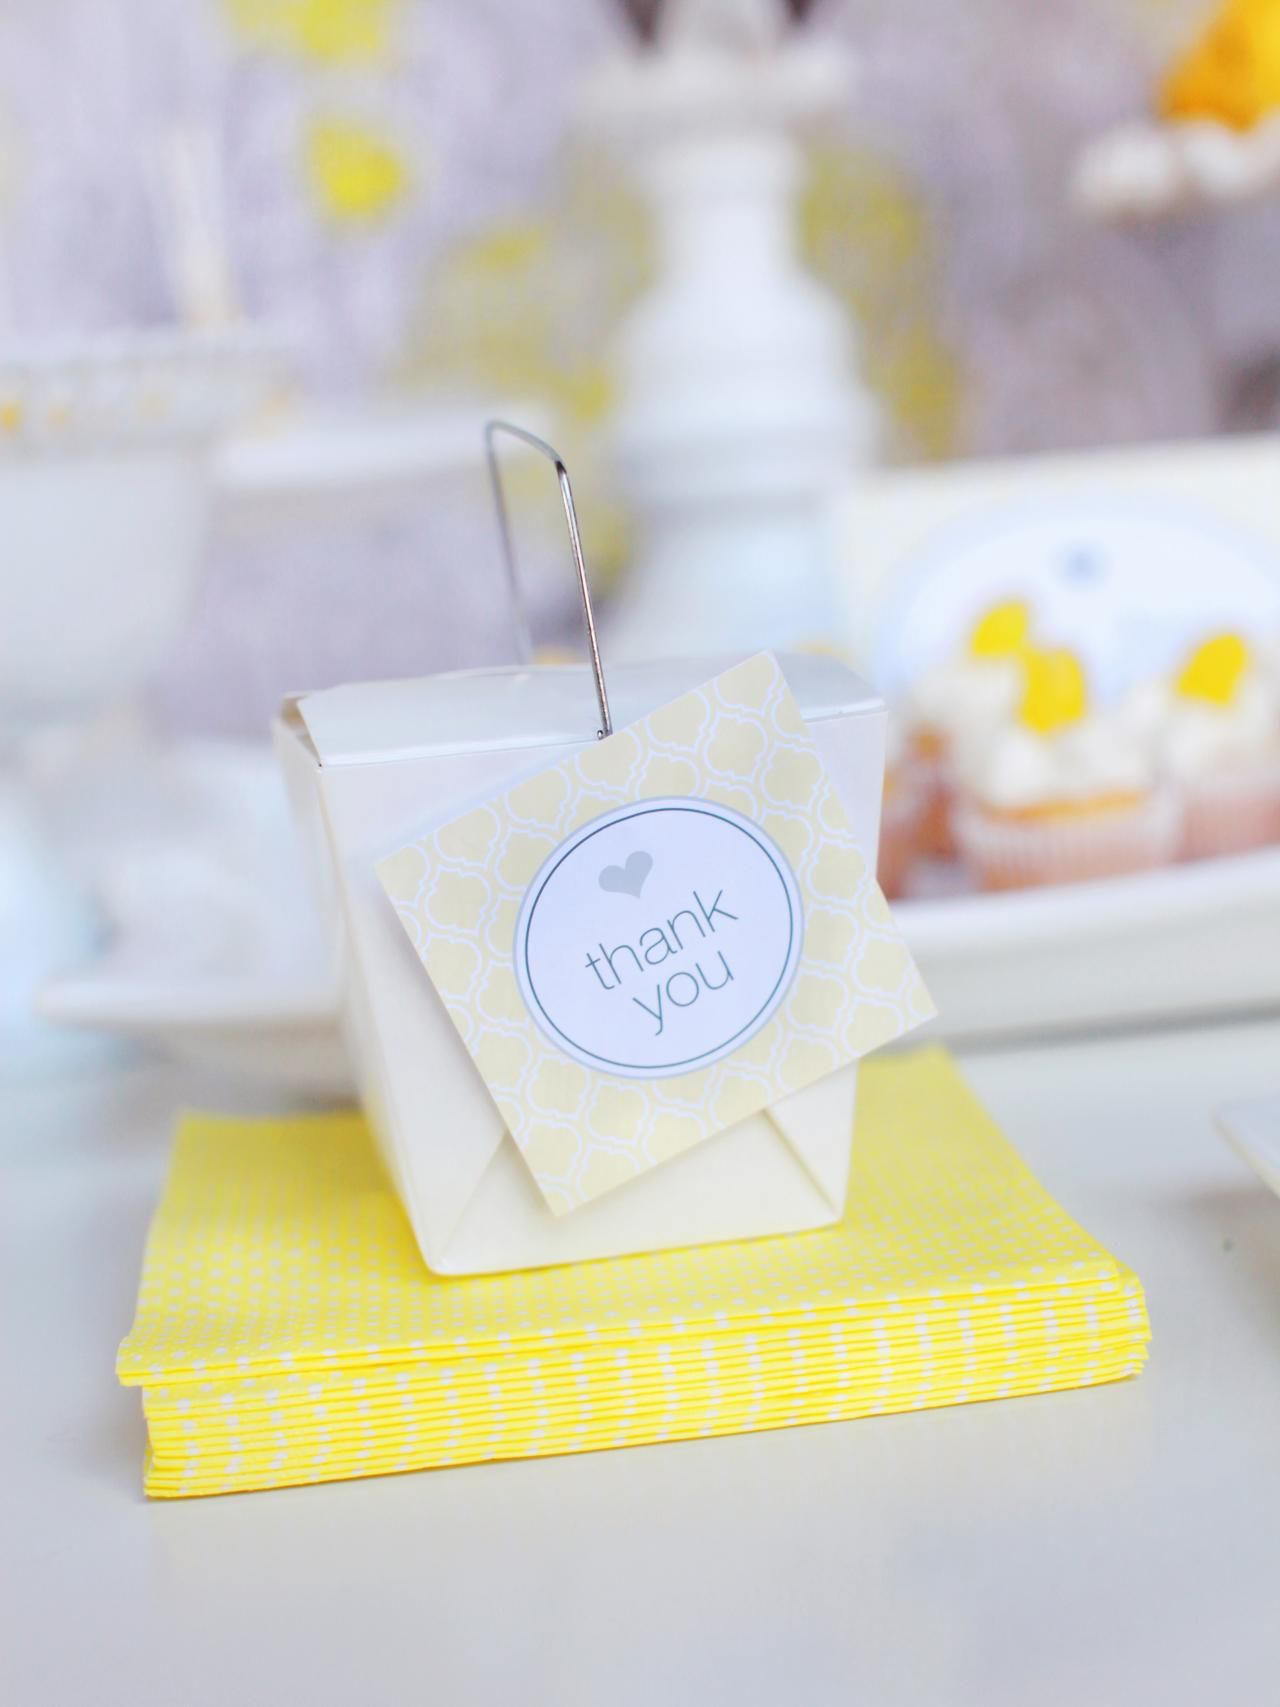 Elements of a Dessert Table | Sweet memories, Dessert table and Goodies